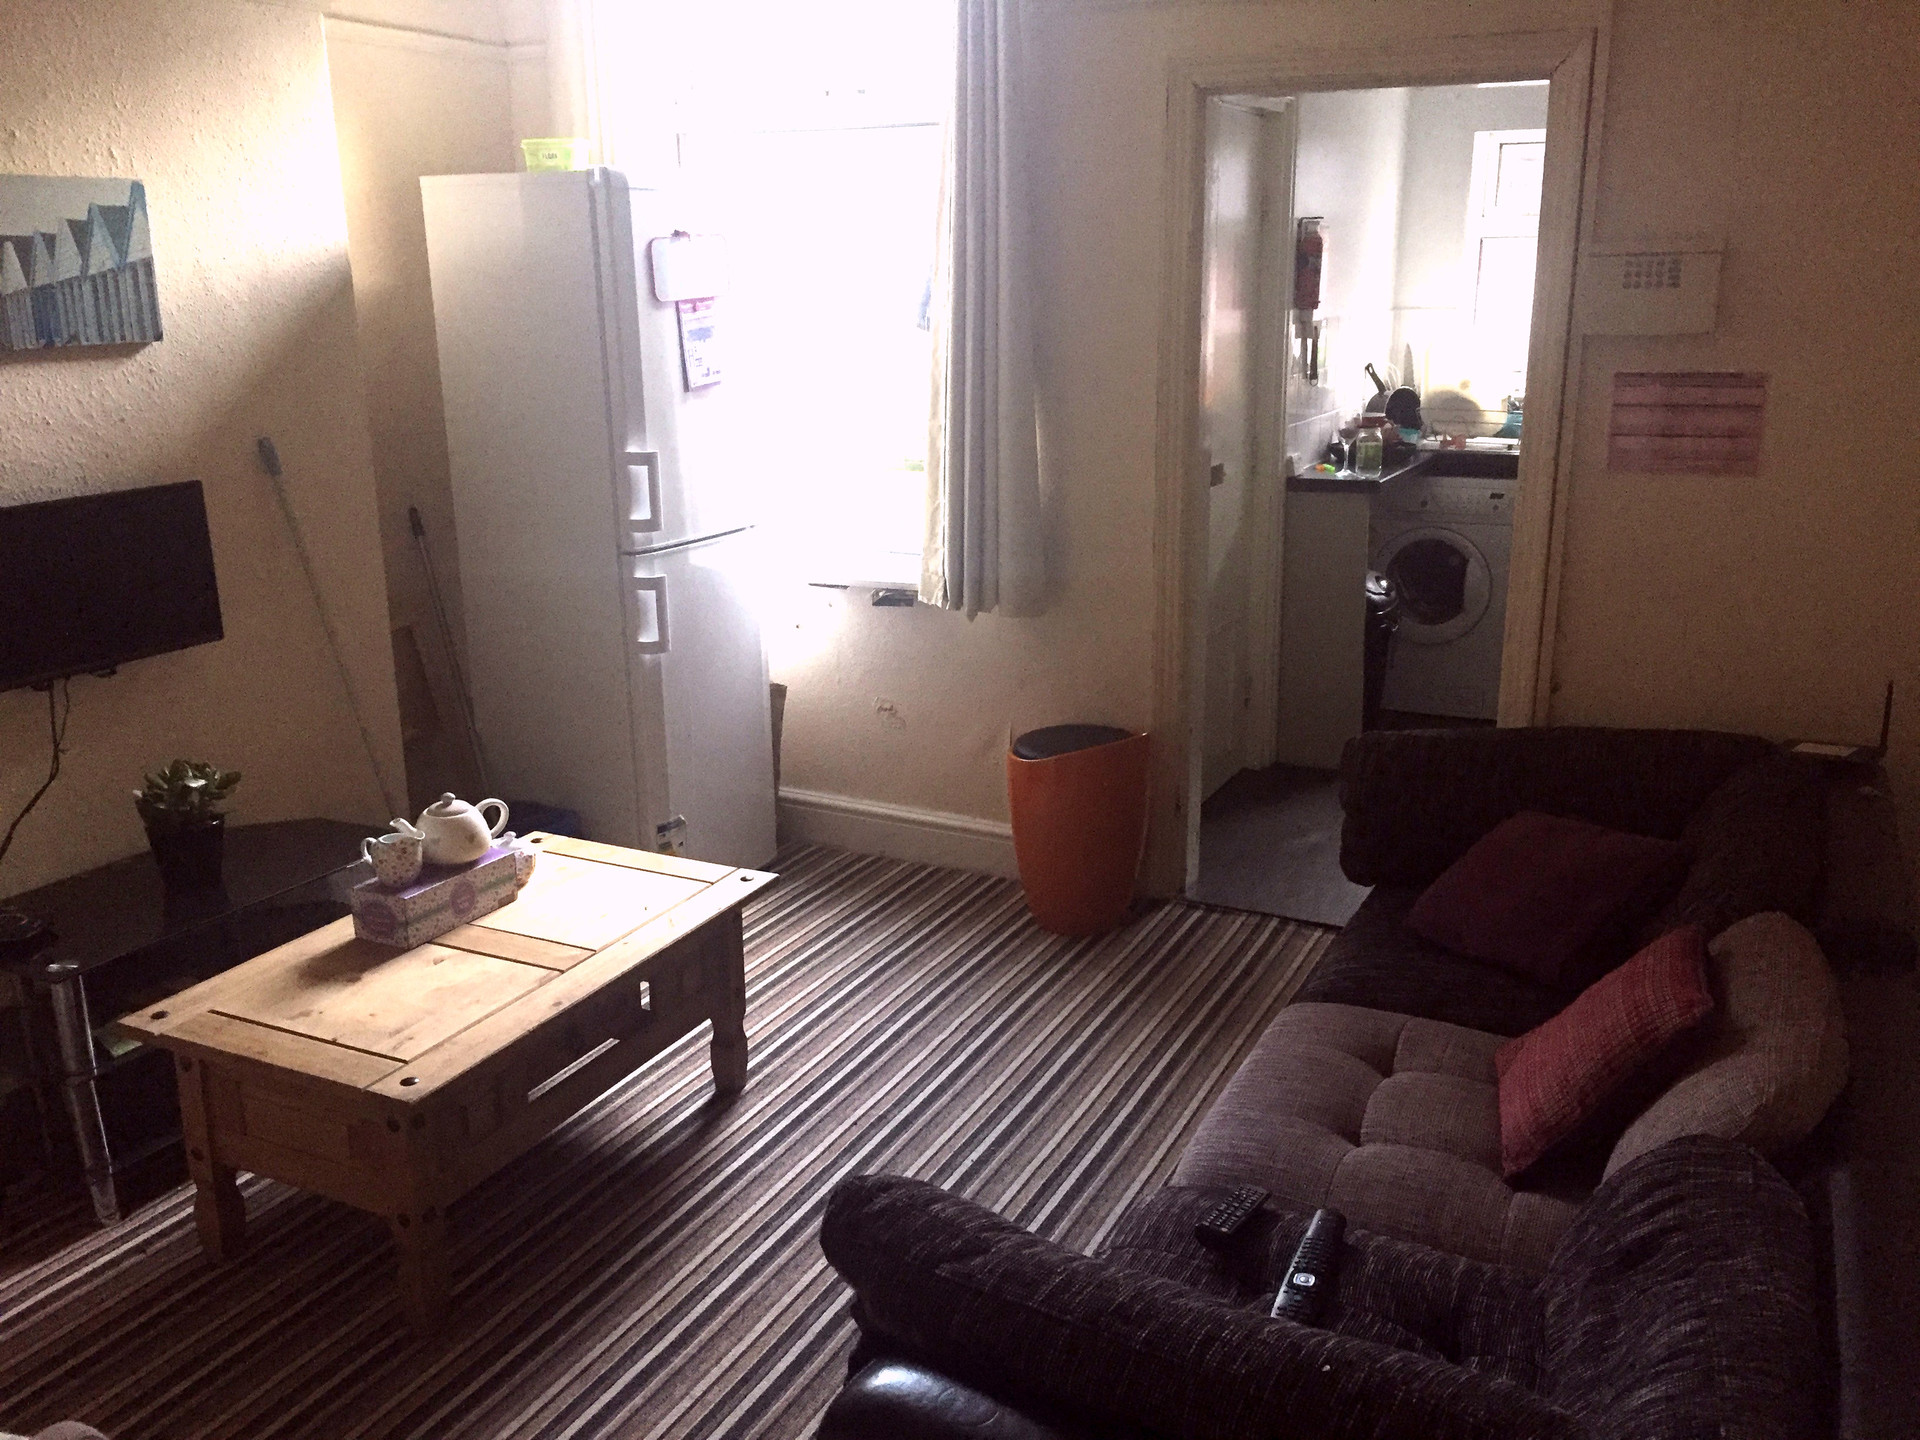 Peachy Large Double Student Room To Rent Sheffield England Download Free Architecture Designs Embacsunscenecom